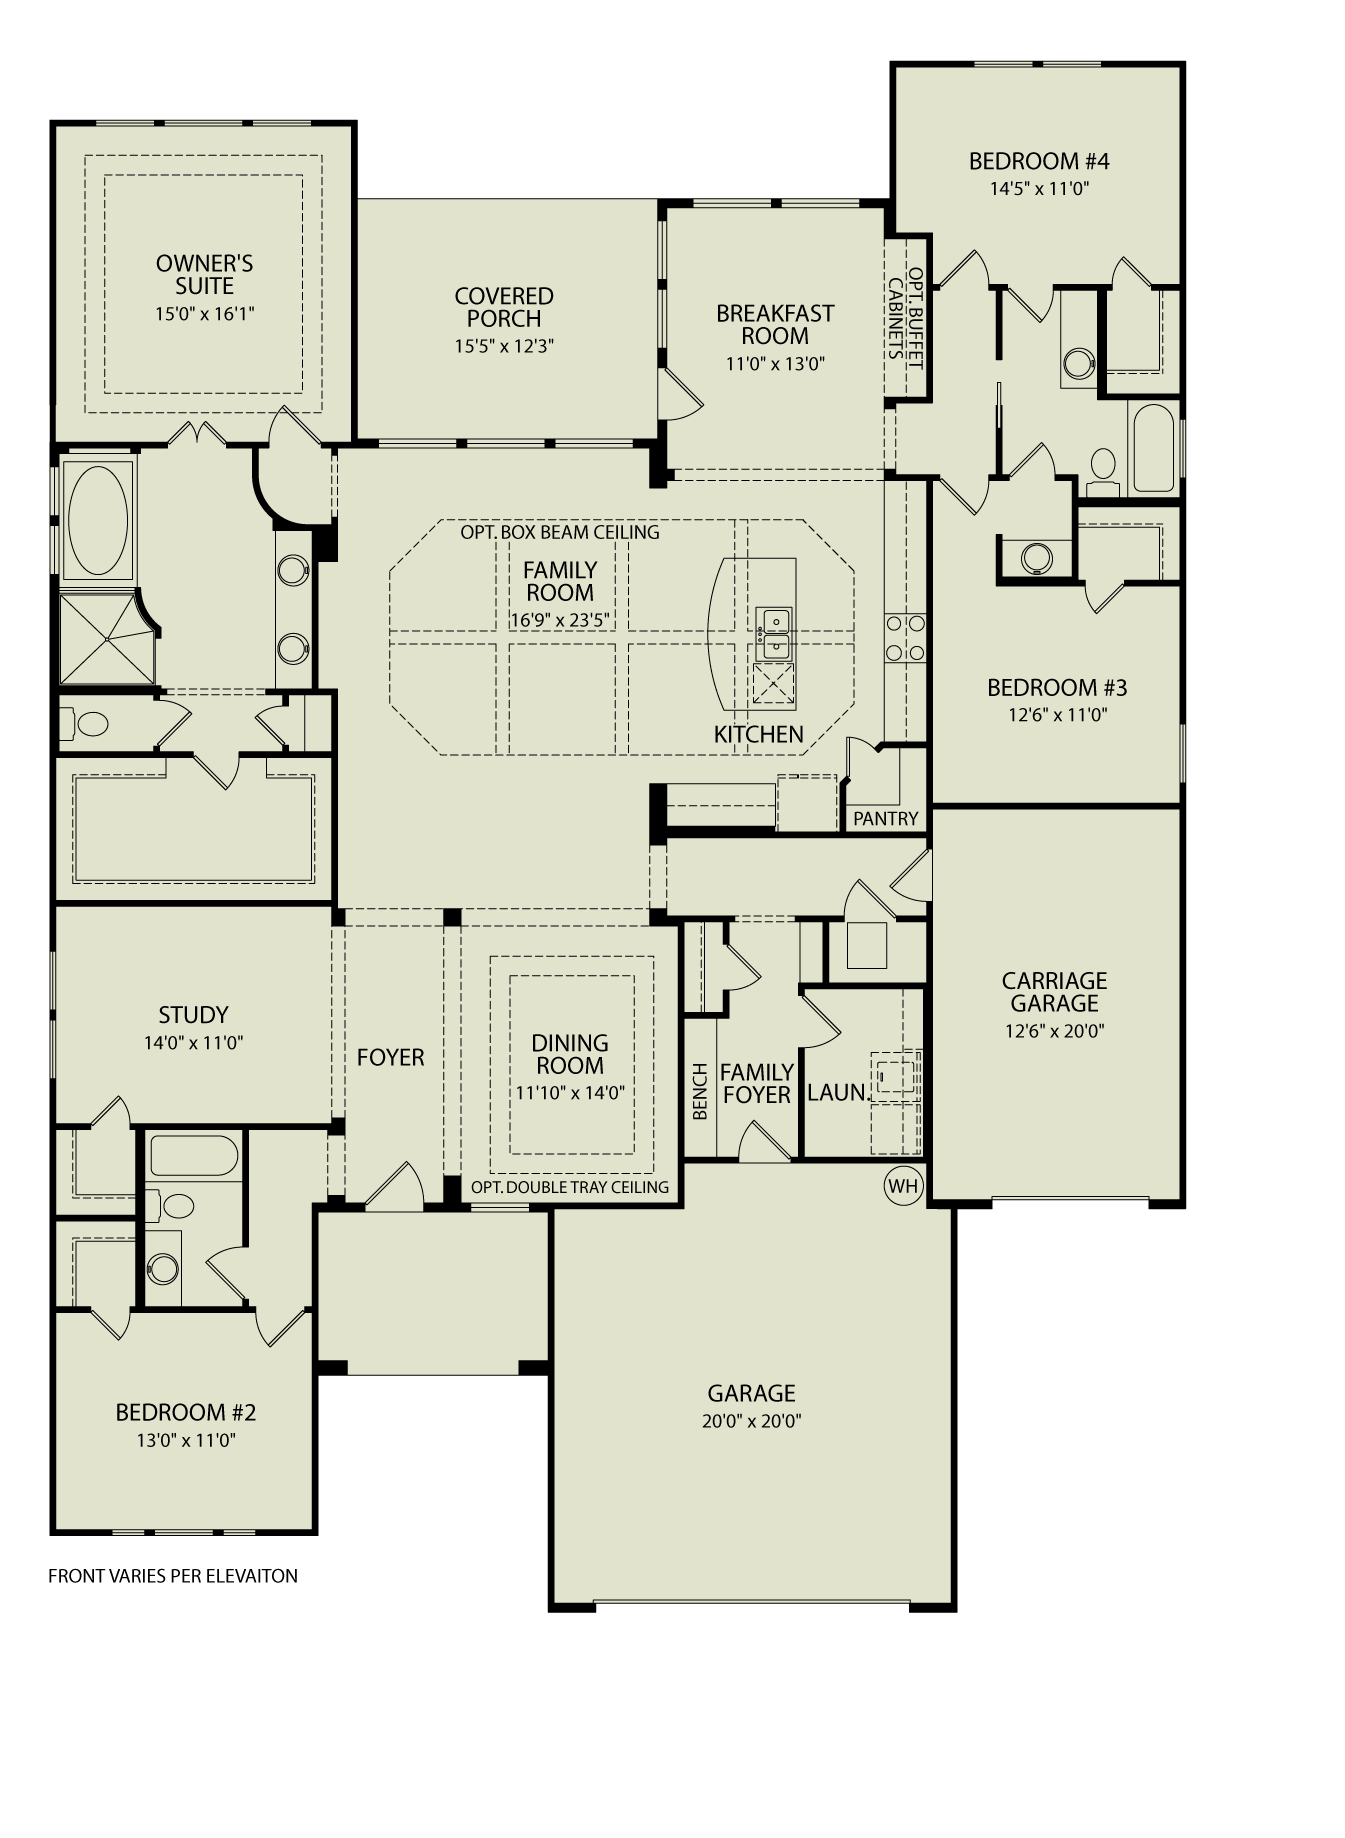 Custom House Design App: Drees Homes Interactive Floor Plans